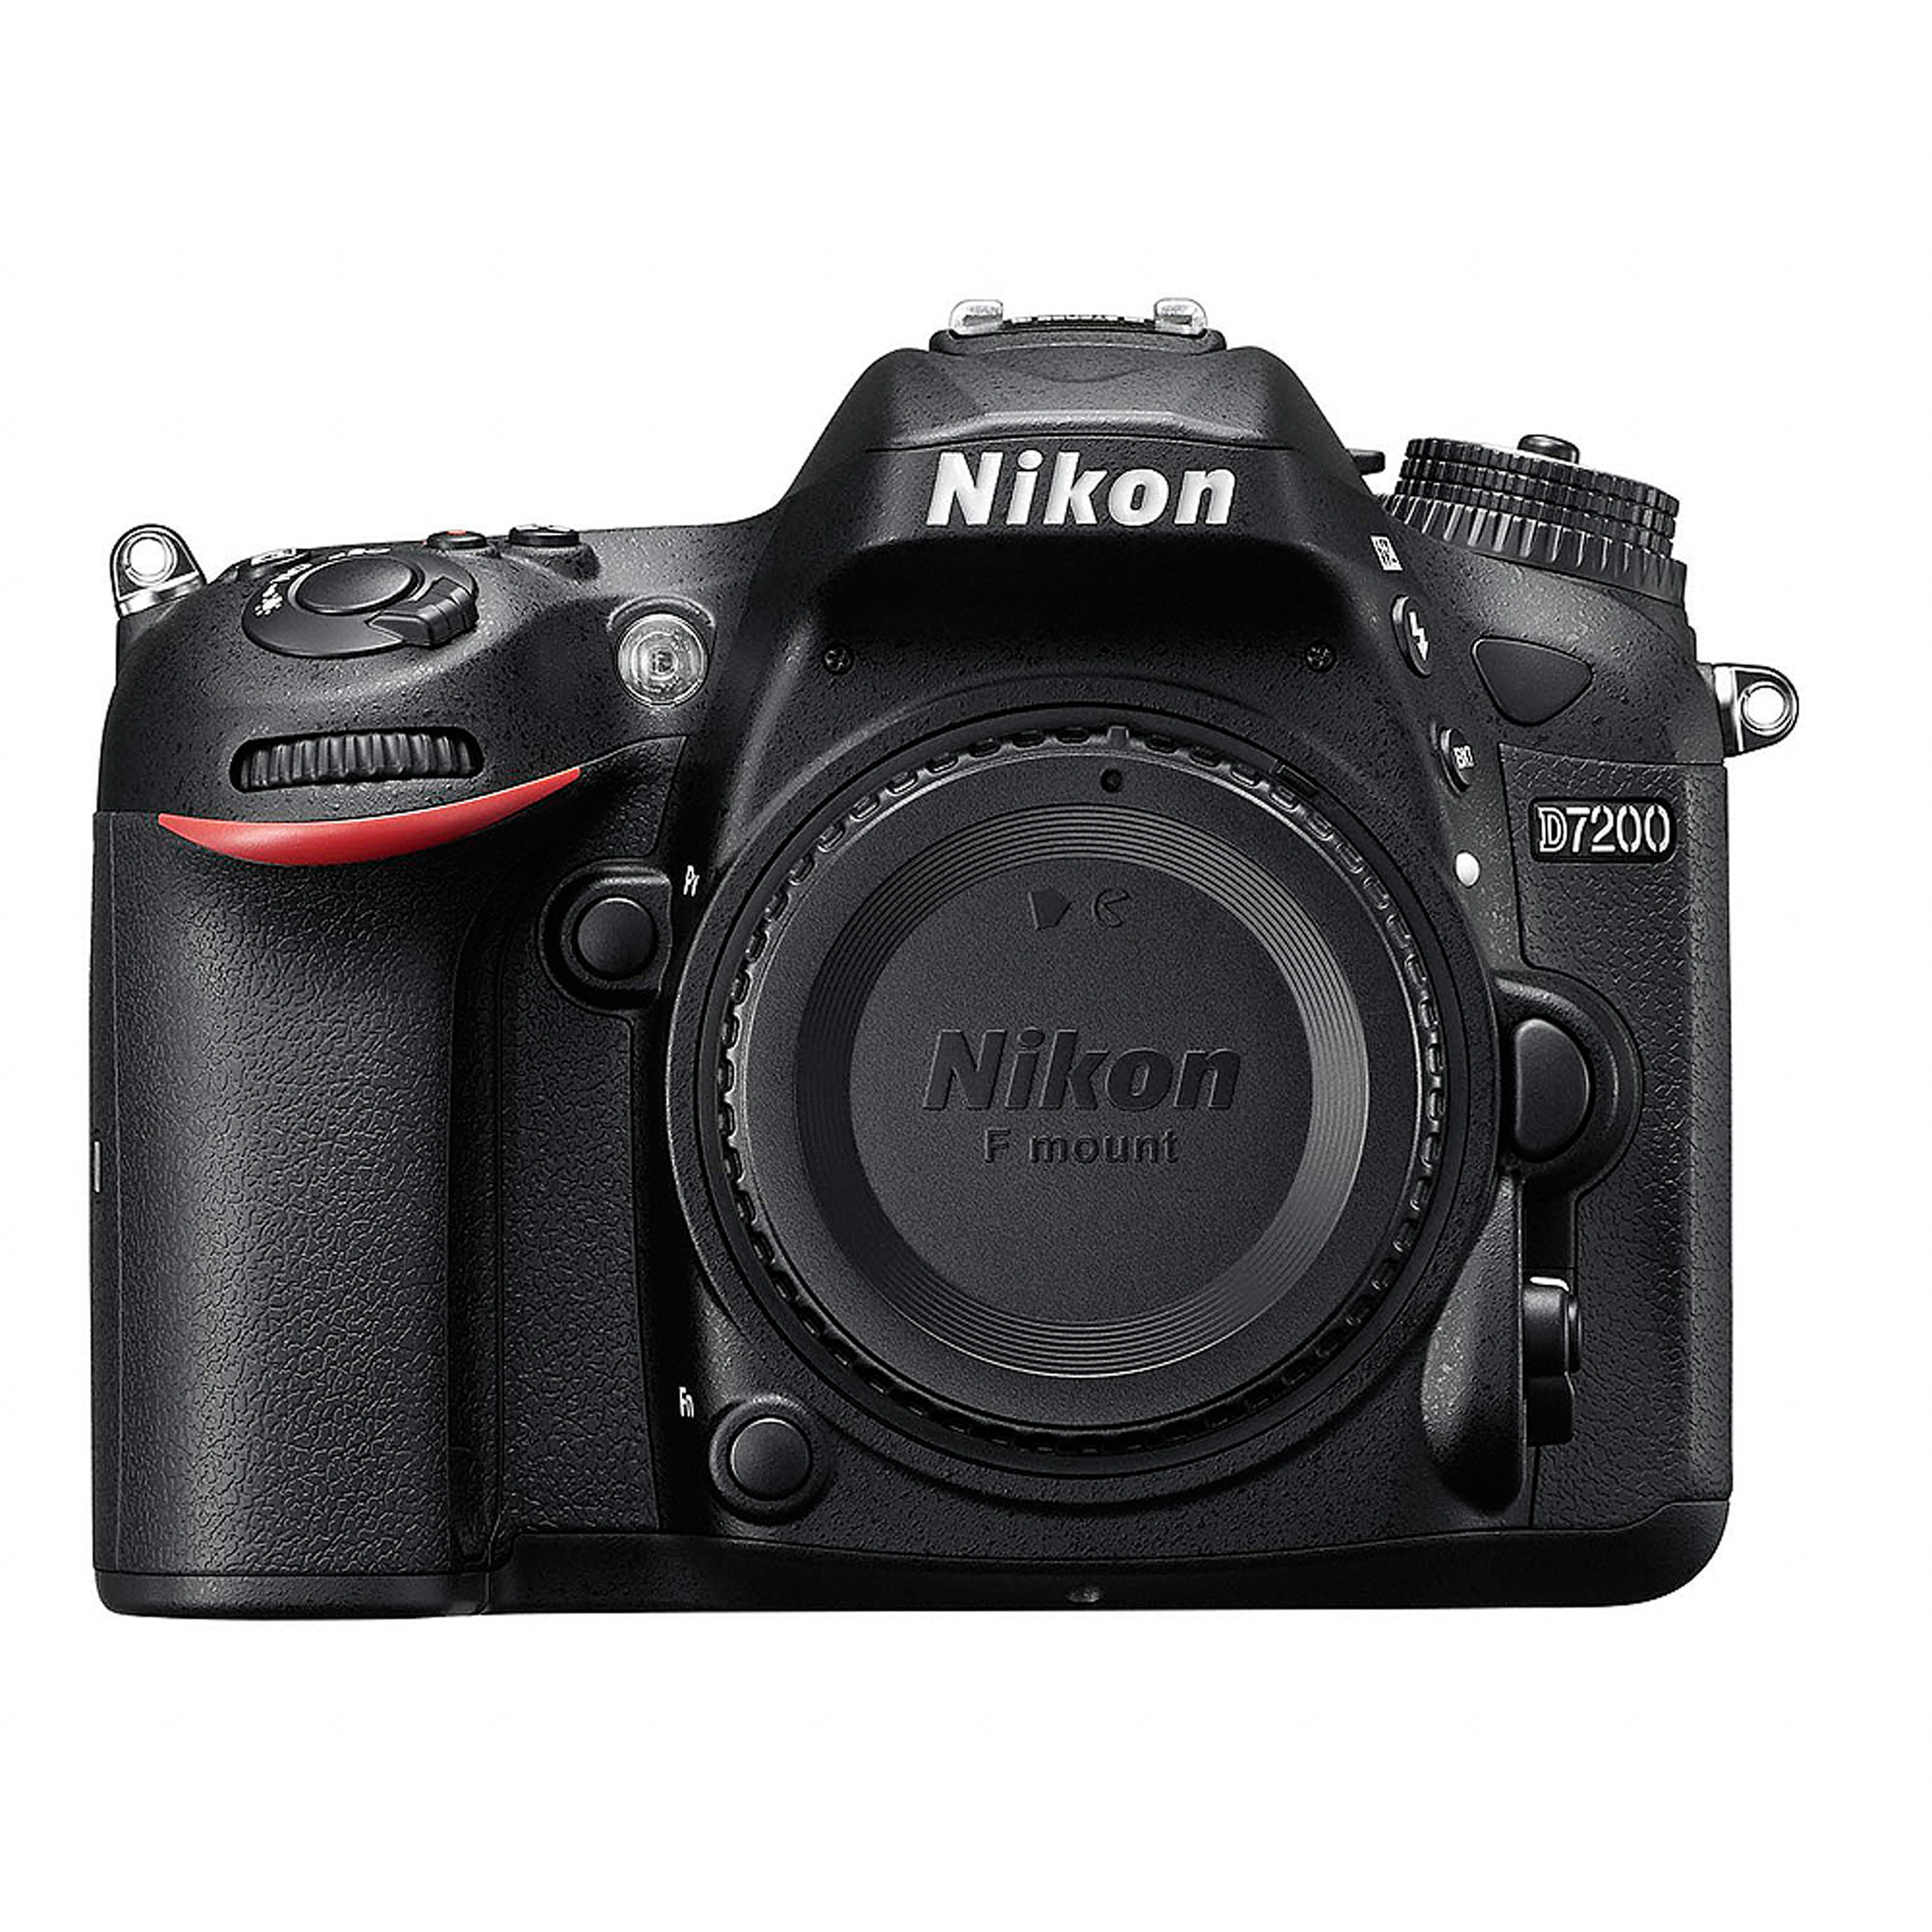 Nikon Black D7200 DX Digital SLR Camera with 24.2 Megapixels (Body Only)